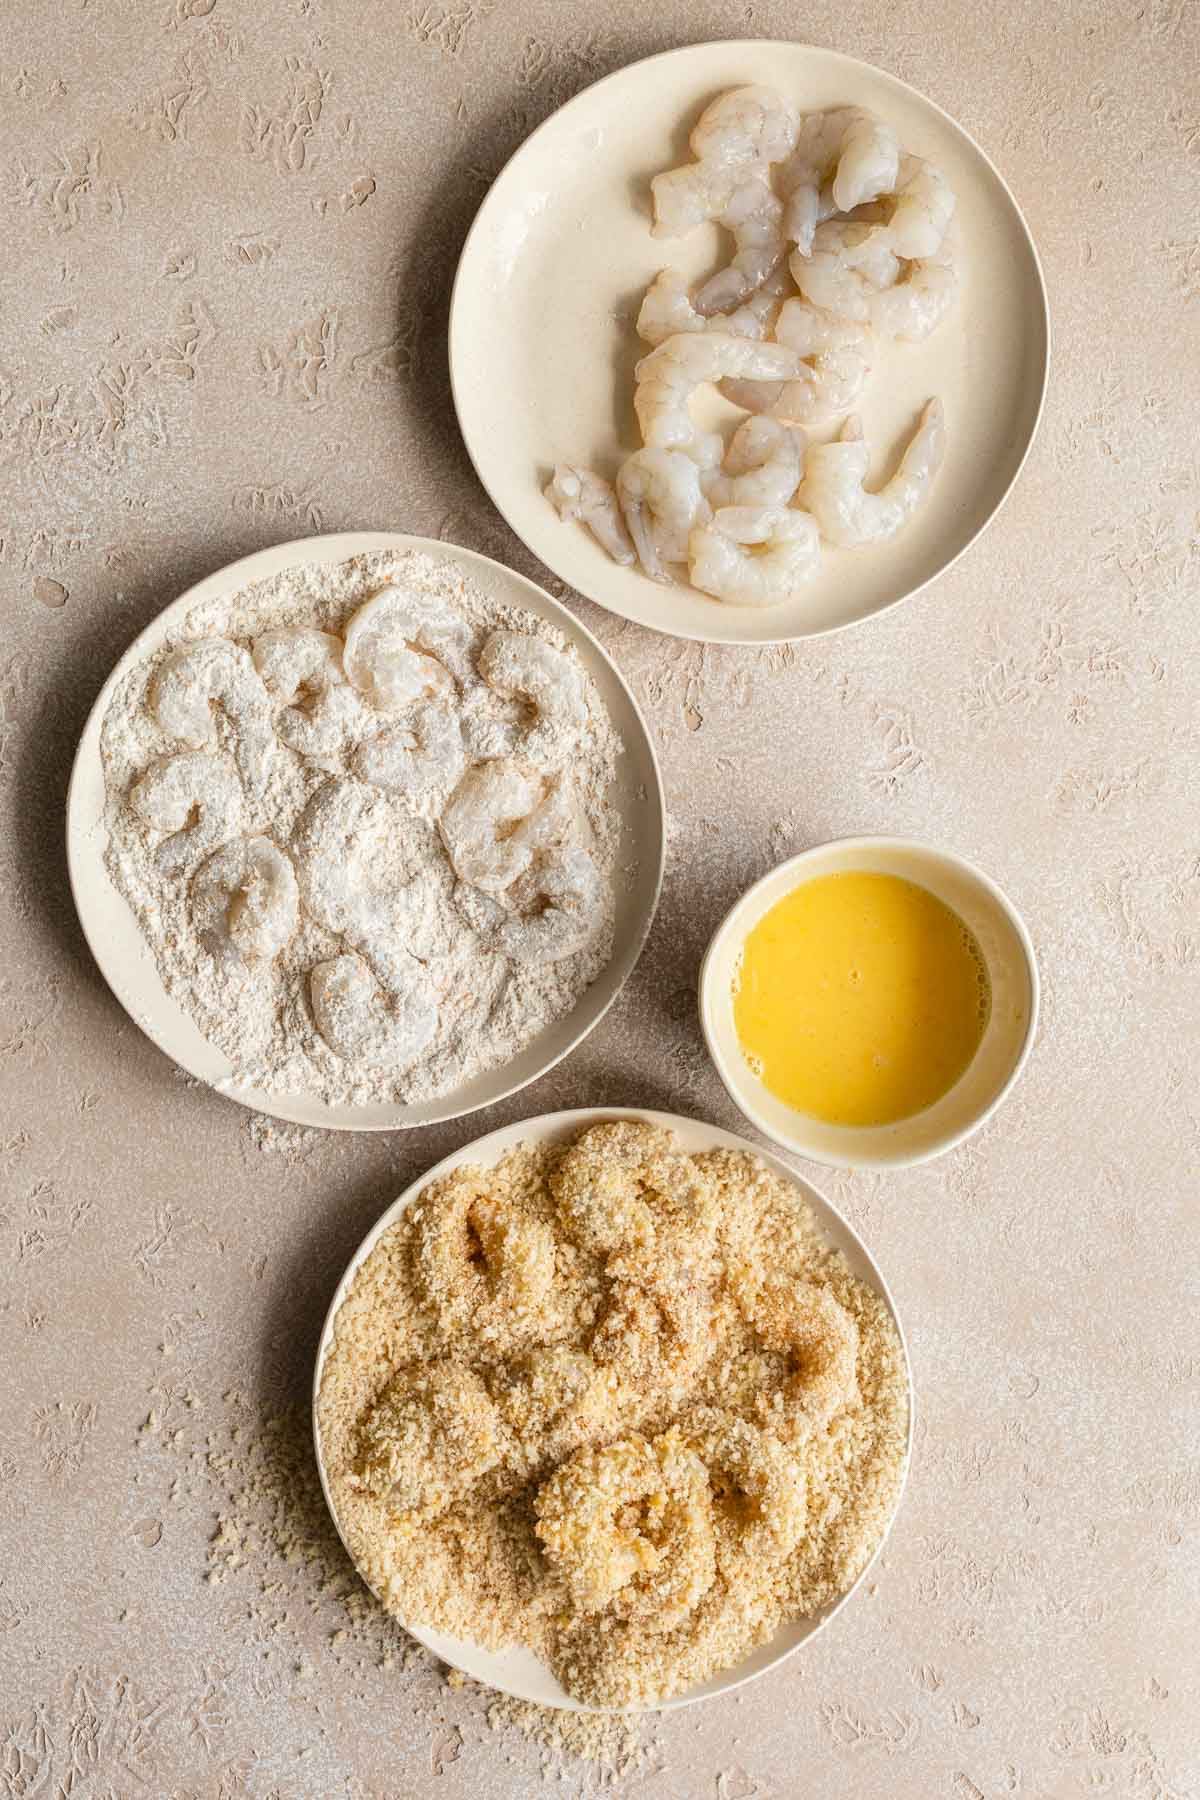 The process of breading the shrimp by coating in flour, egg and panko crumbs.